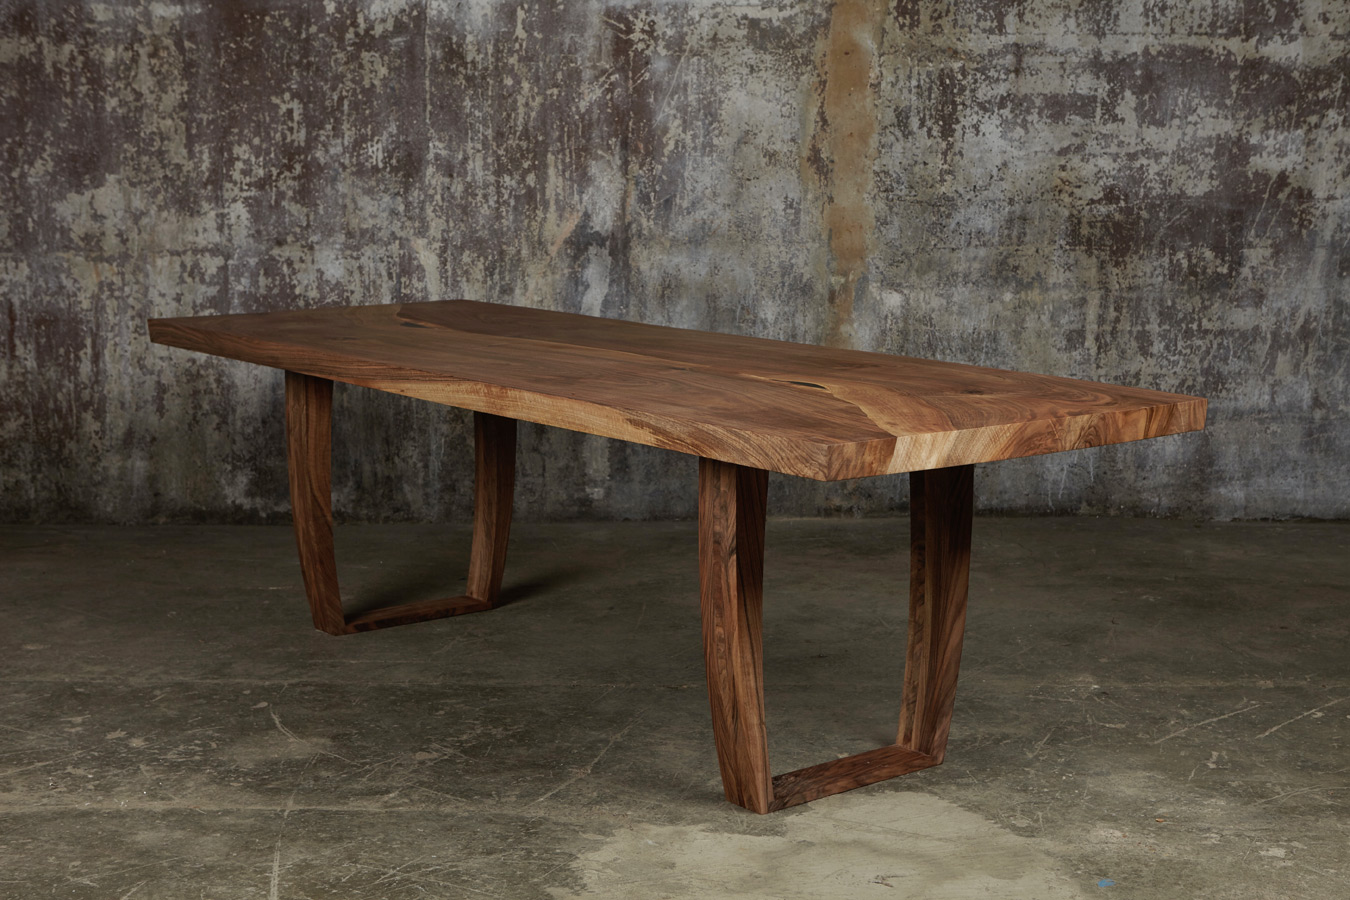 Tables in English salvaged oak, English salvaged yew, Burr